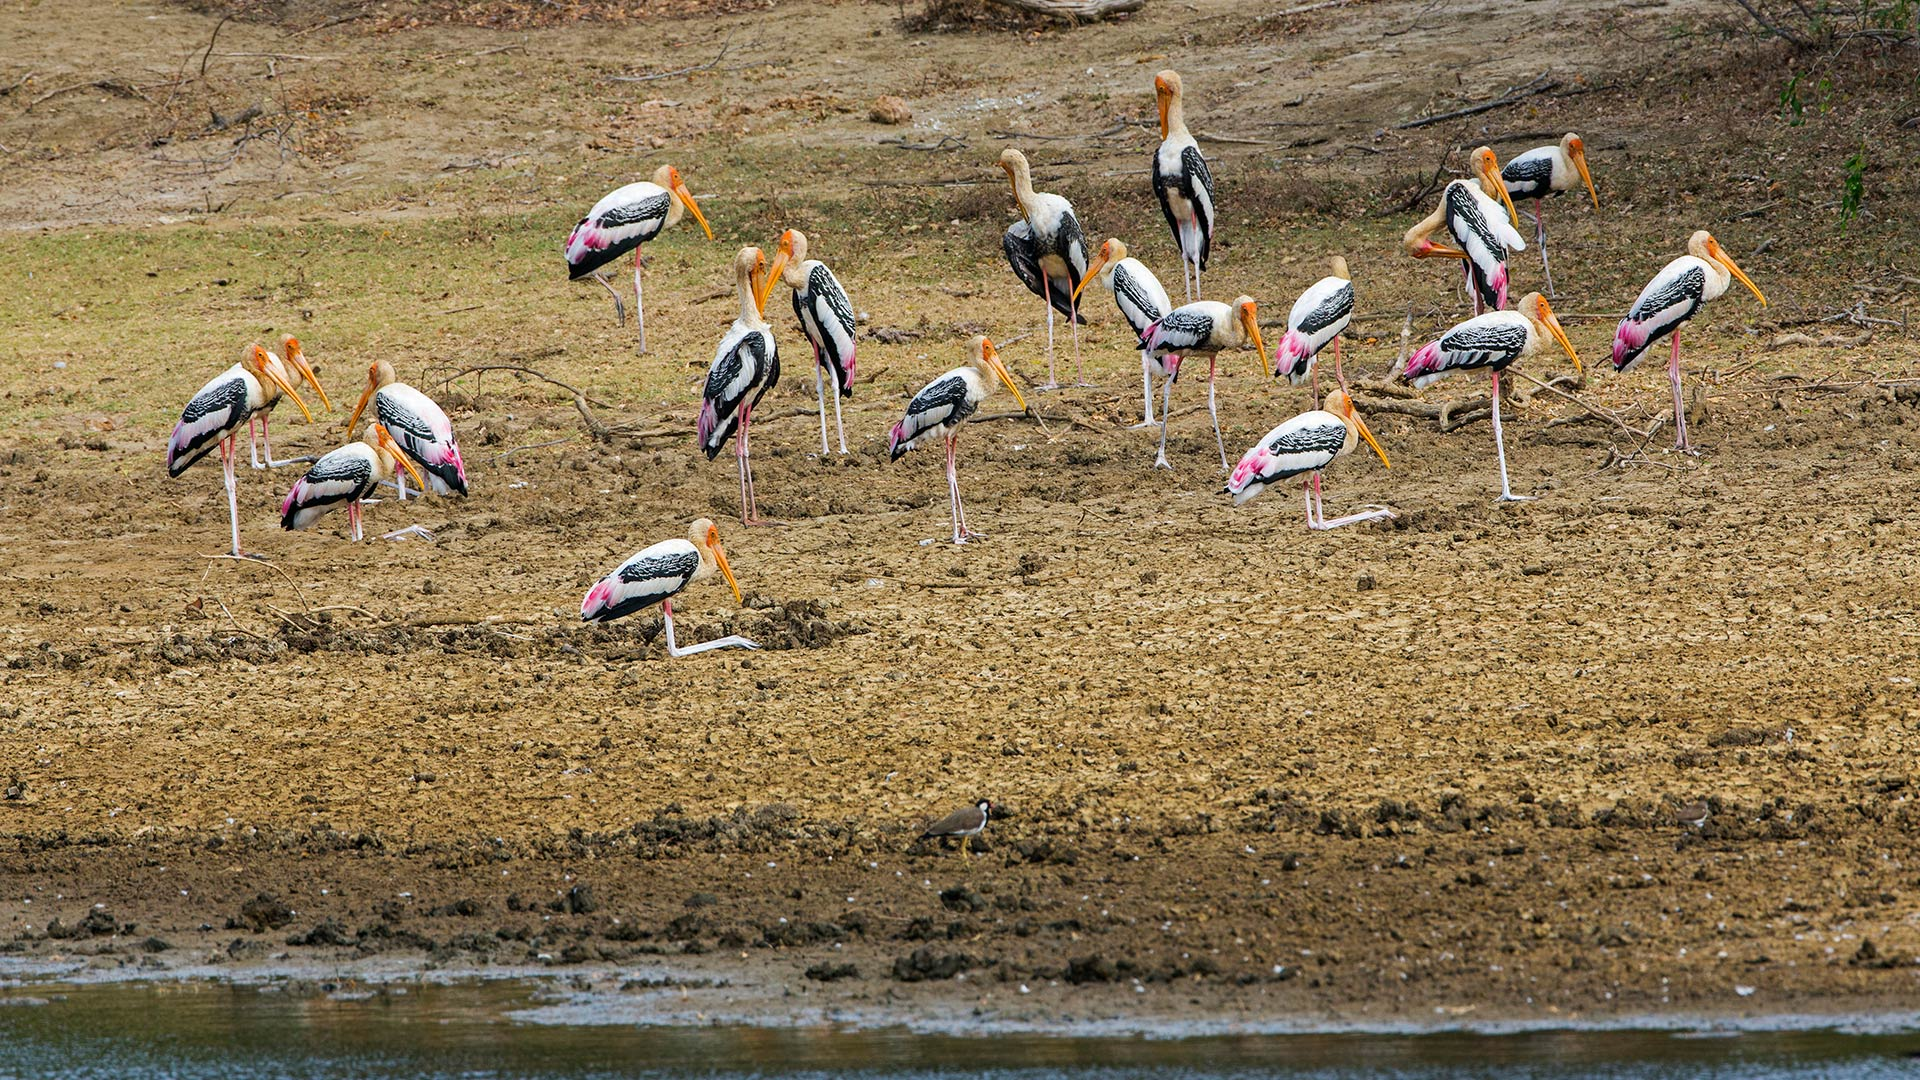 A flock of painted storks in Yala National Park, Sri Lanka